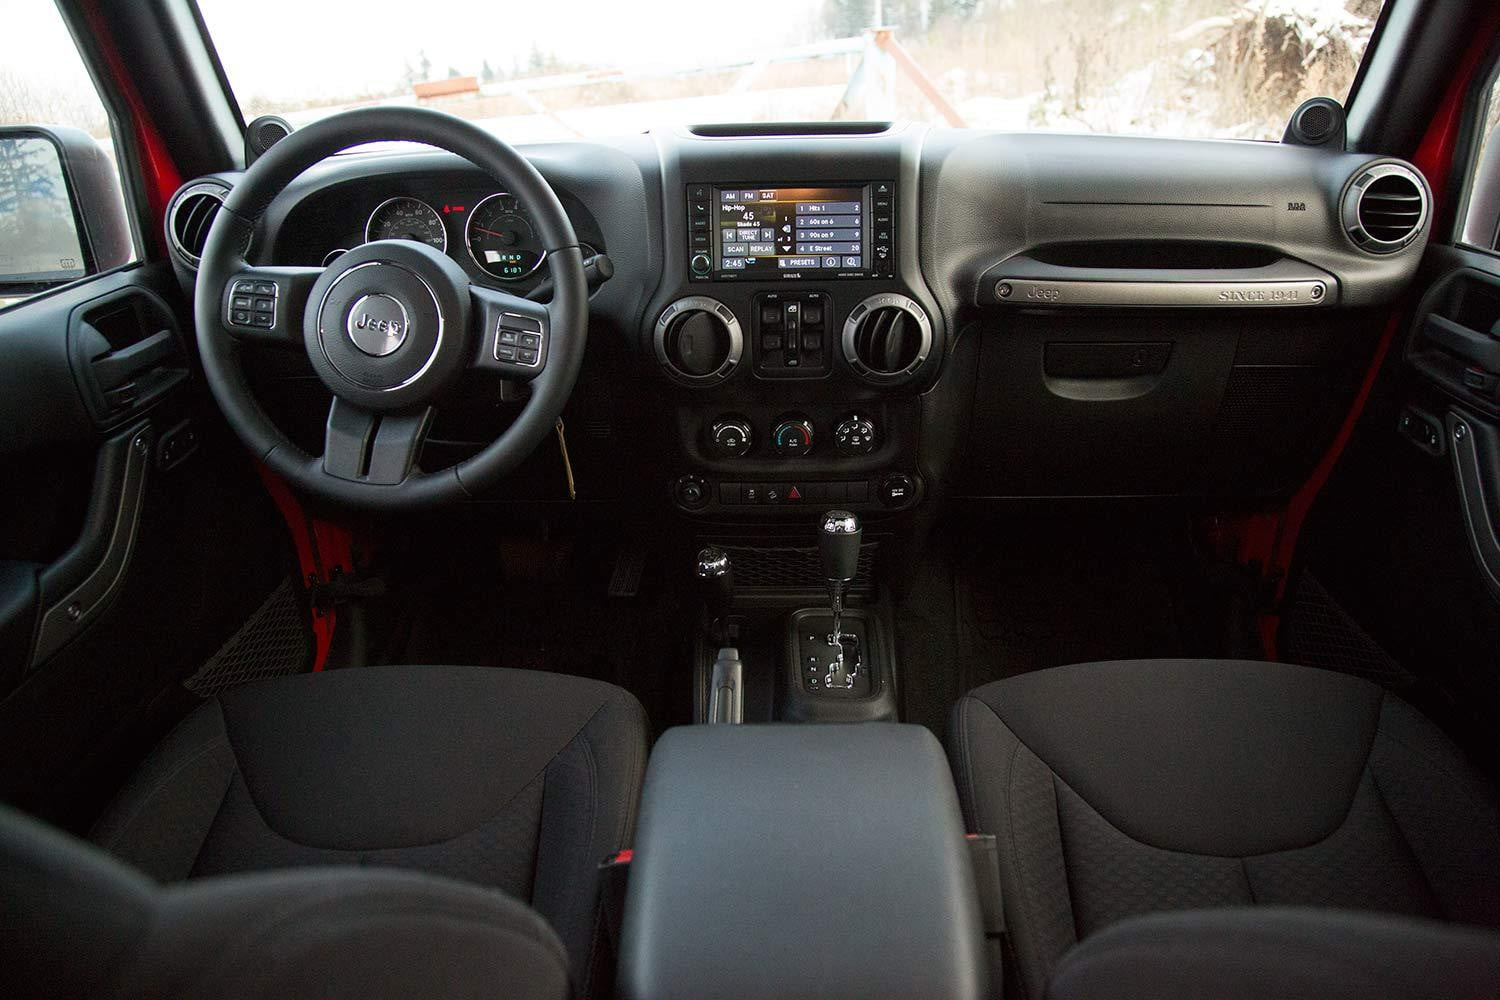 2015 Jeep Wrangler Unlimited Review Digital Trends